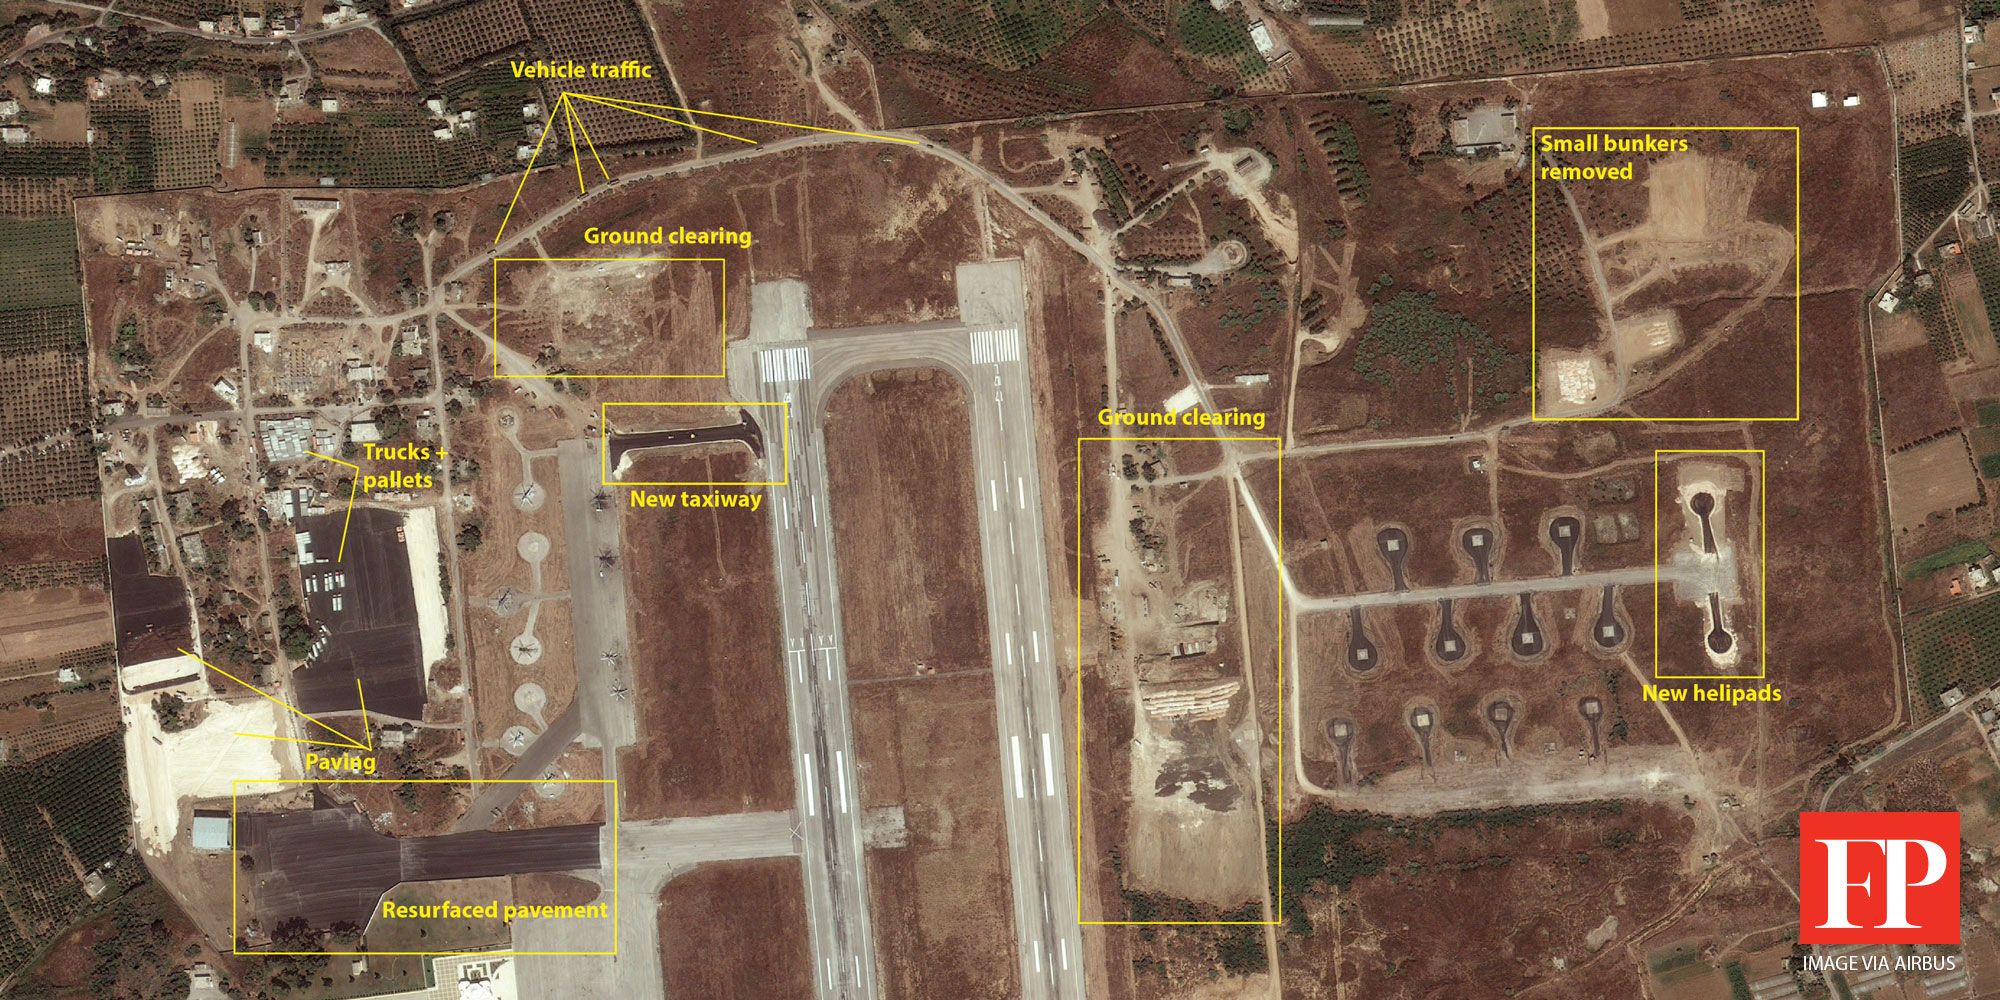 Above, a recent satellite image from the same airbase.